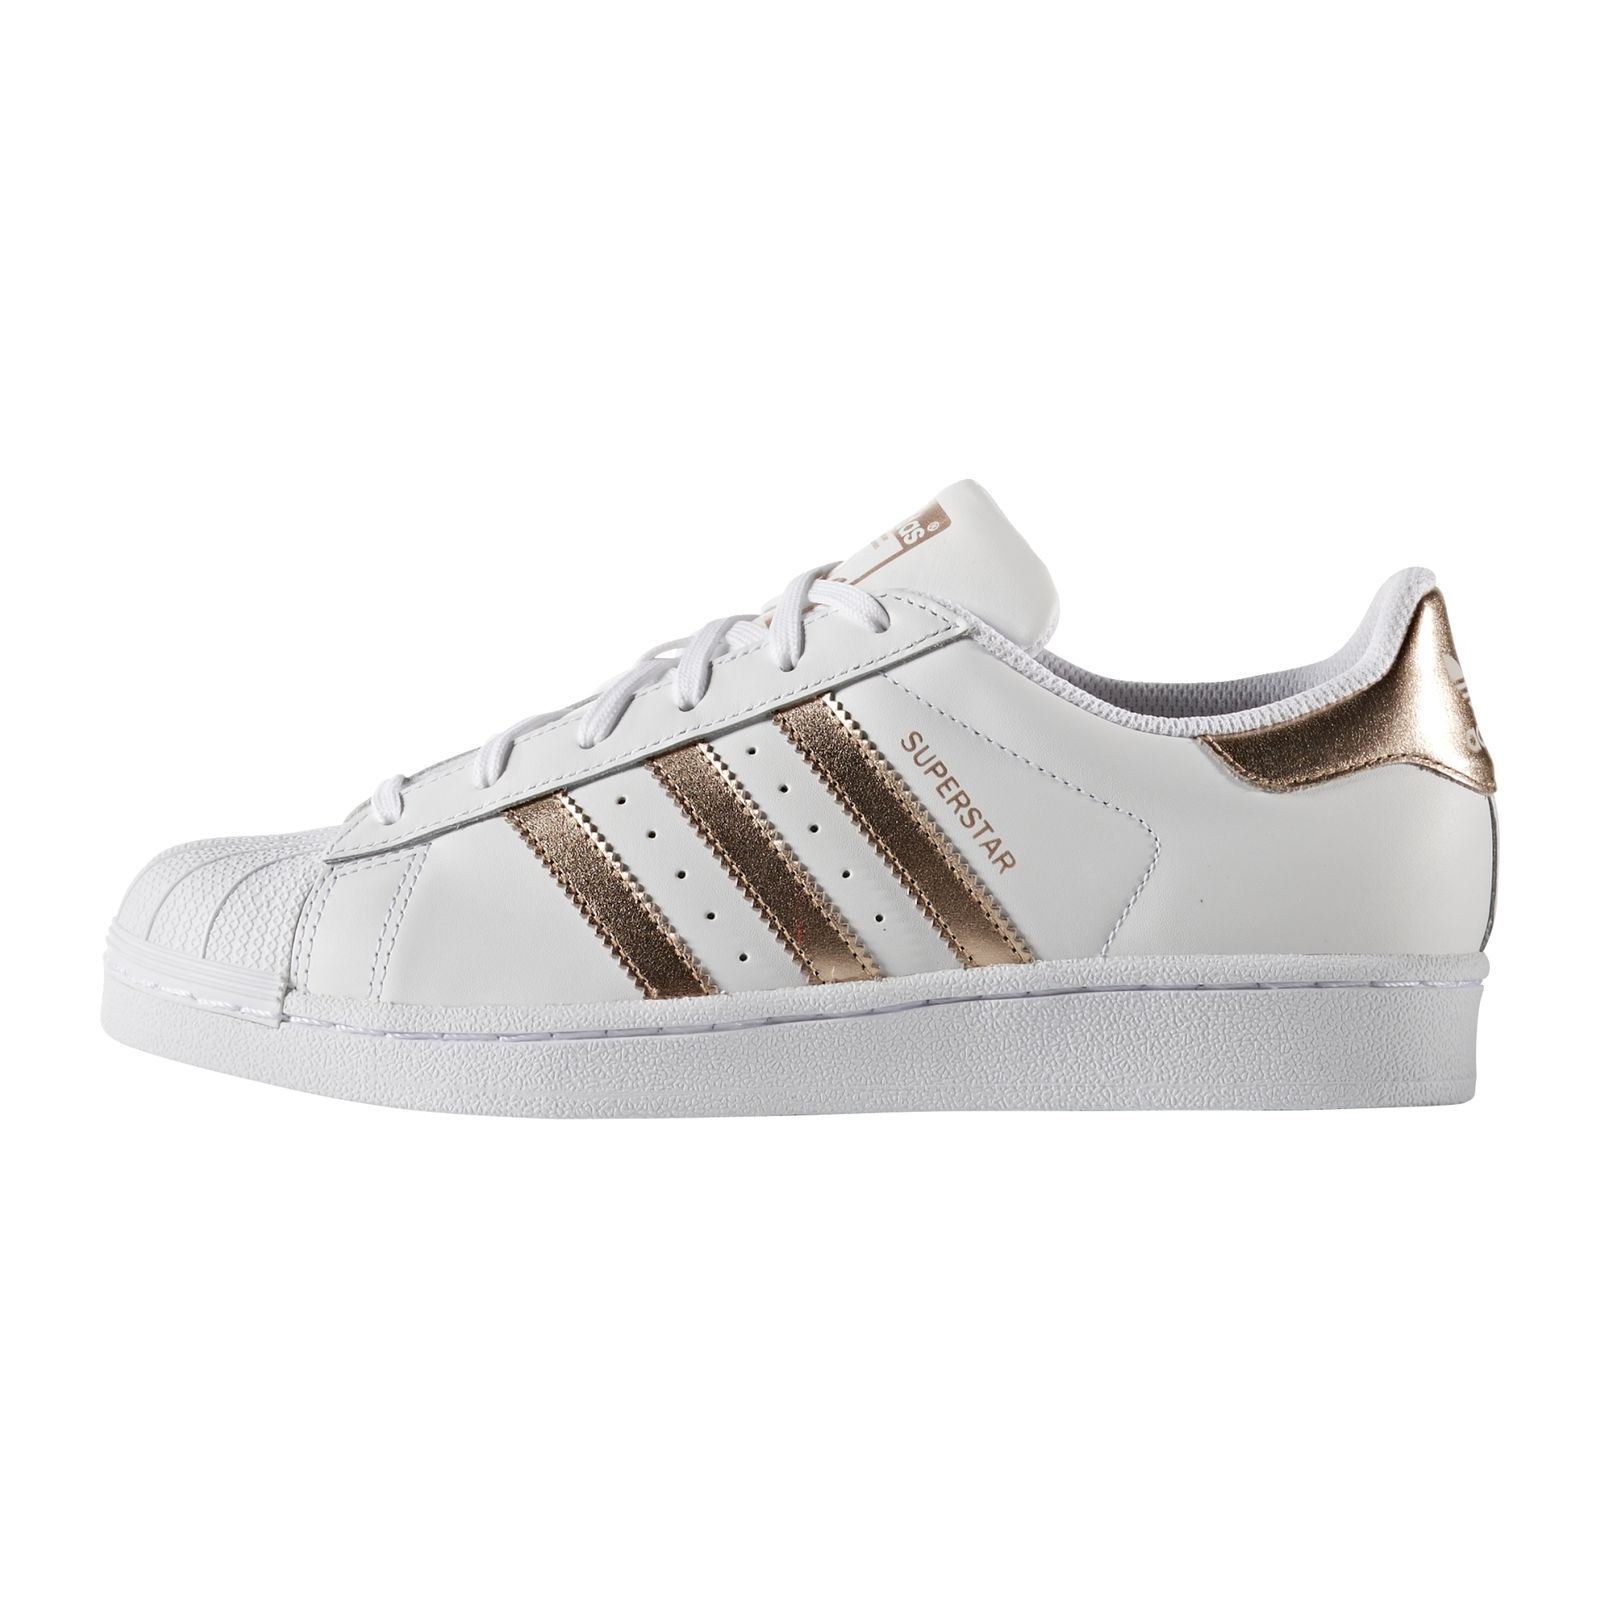 adidas originals superstar baskets en cuir blanc. Black Bedroom Furniture Sets. Home Design Ideas